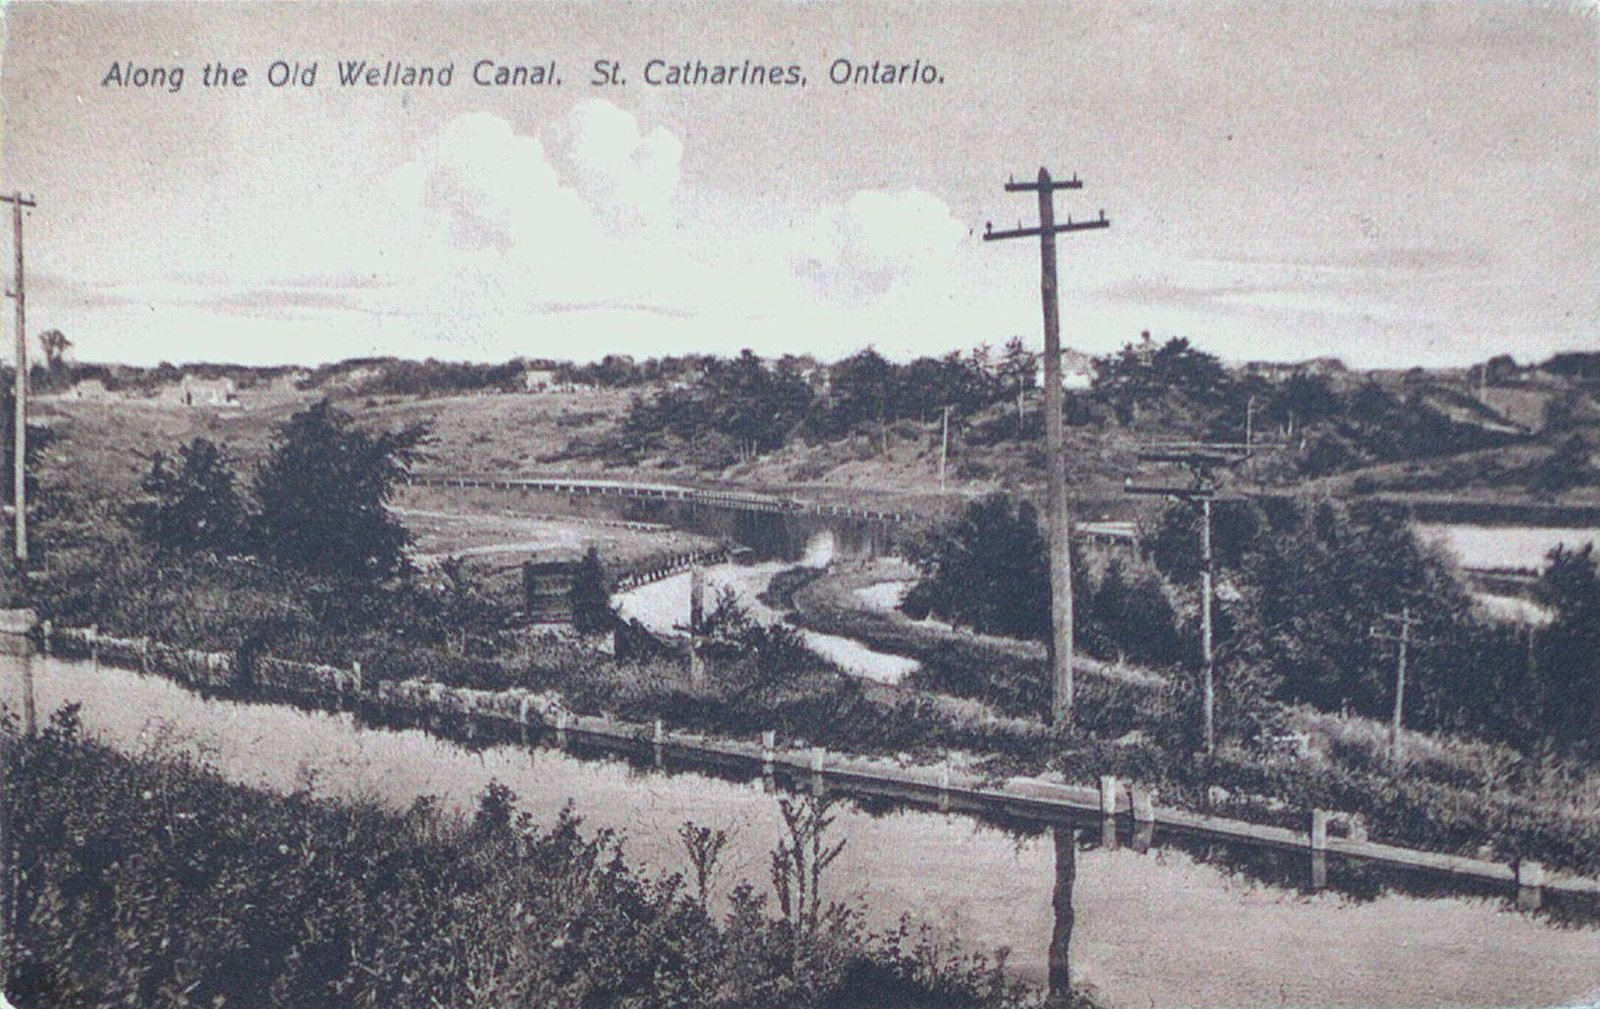 Along the Old Welland Canal